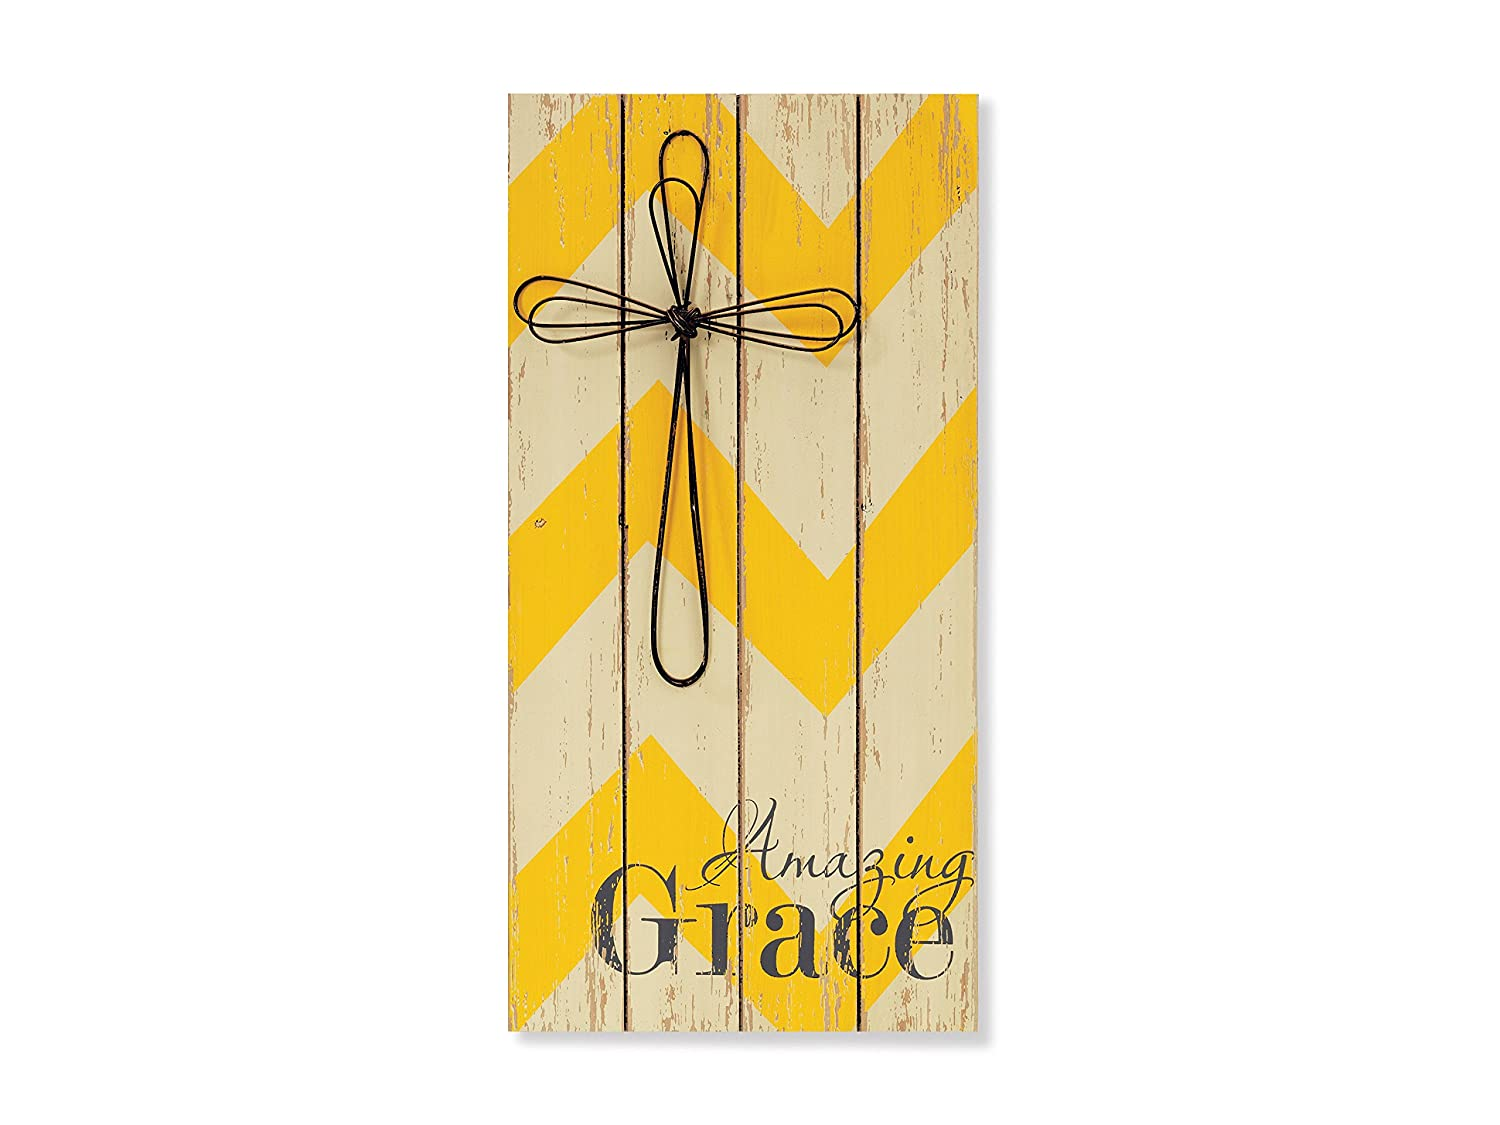 Amazon.com: Large Amazing Grace Wooden Wall Decor with Metal Cross ...